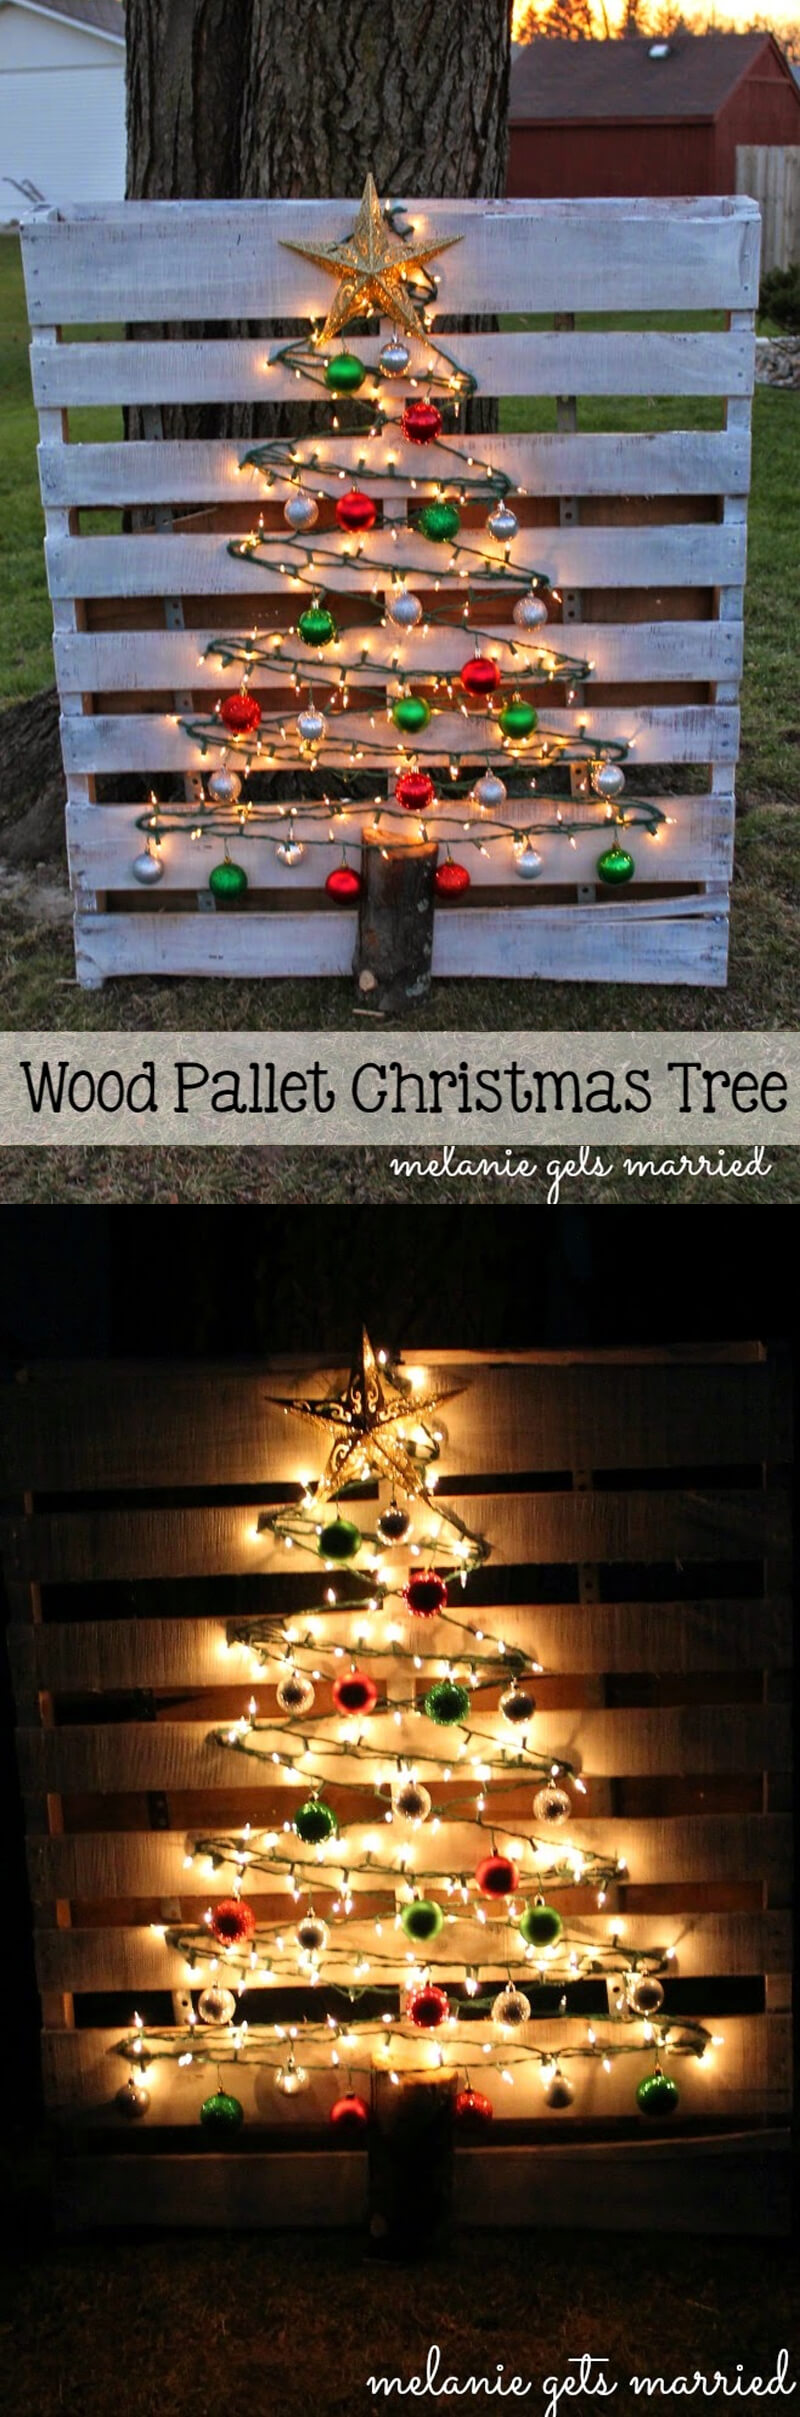 20 Outdoor Christmas Decor Ideas You Cannot Afford To